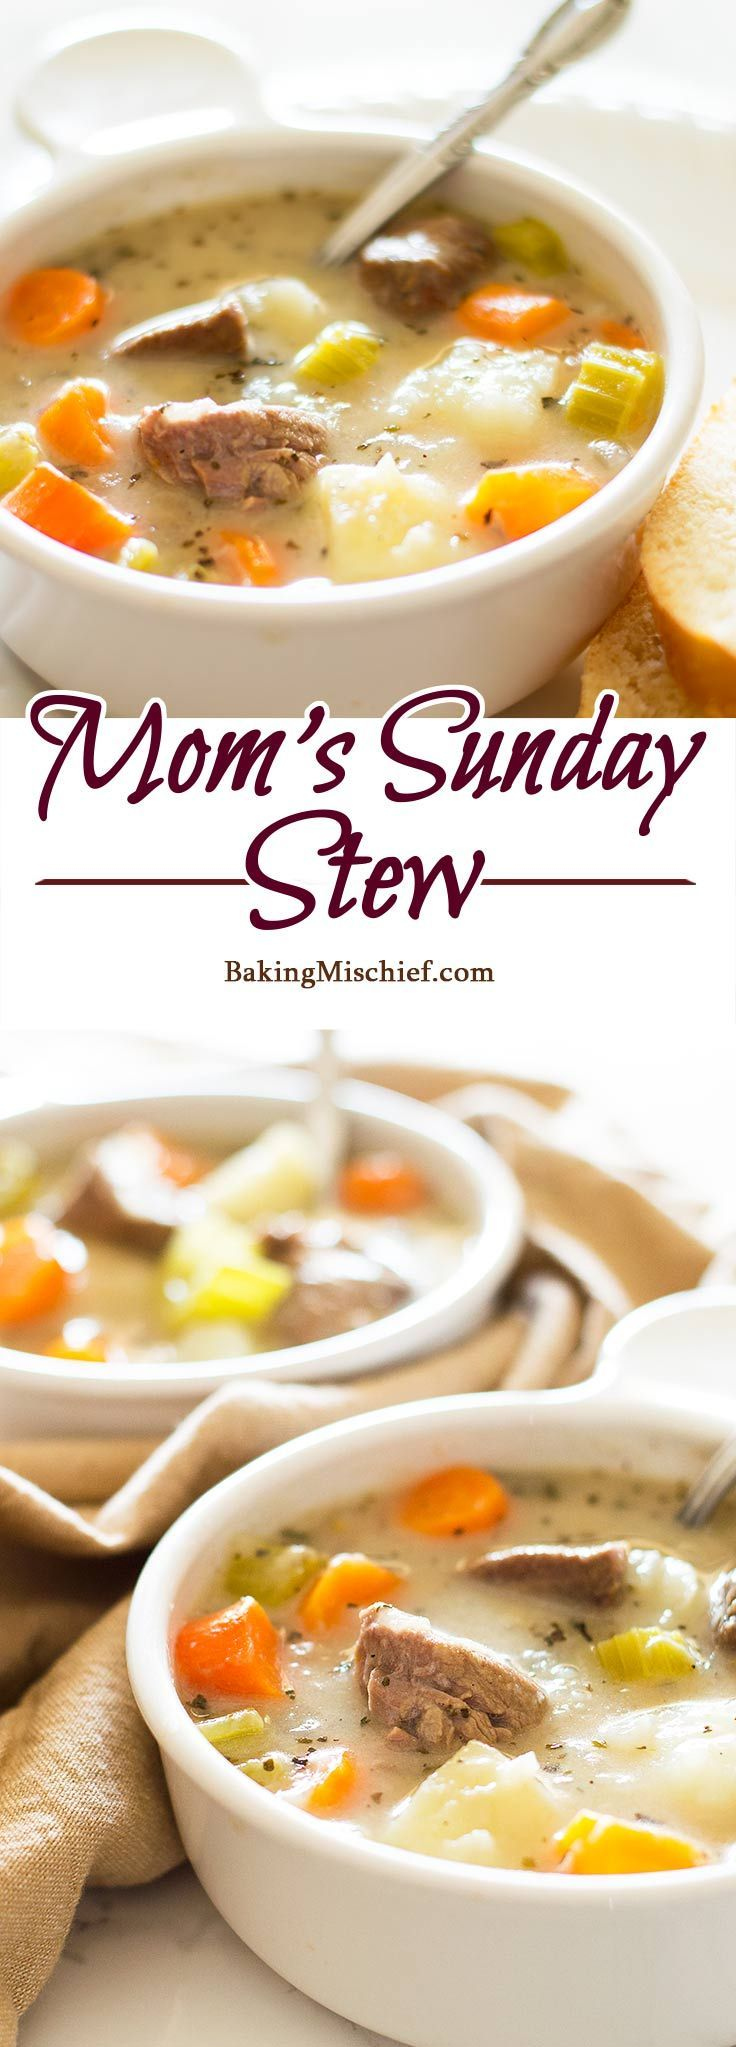 Mom's Sunday Stew - Completely from scratch delicious and hearty beef stew, just like Mom used to make it. Recipe includes nutritional information. http://BakingMischief.com